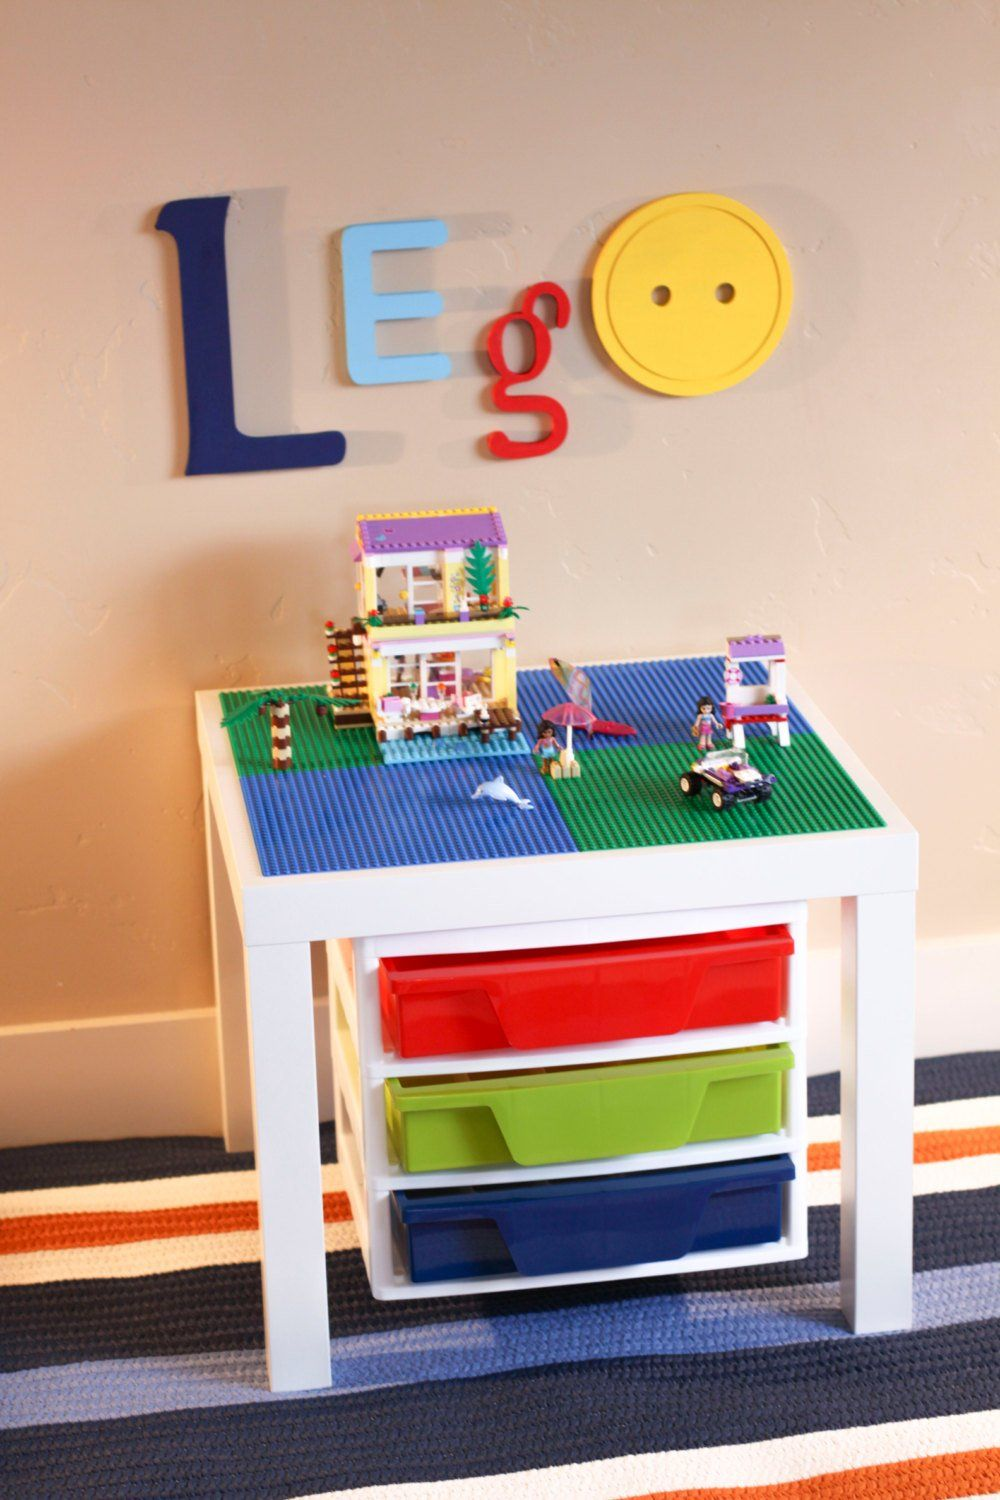 Small Building Table W Storage 20 X 20 Construction Area White Or Black Table Lego Room Kids Room Playroom